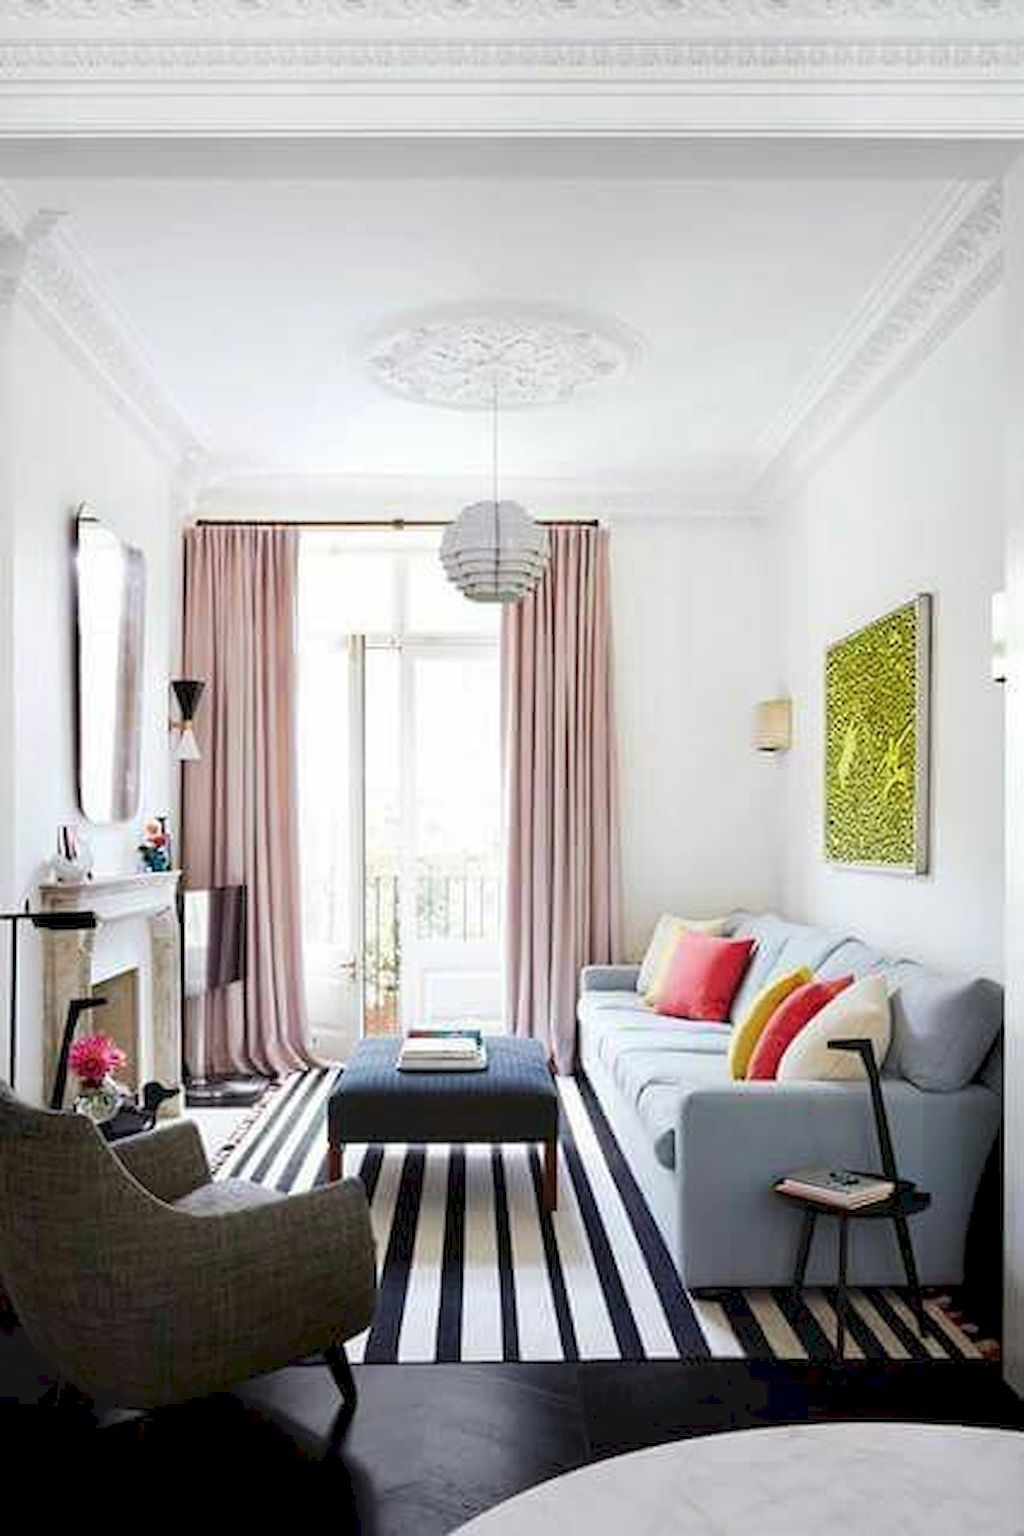 45 Small Apartment Living Room Layout Ideas | Apartment living ...